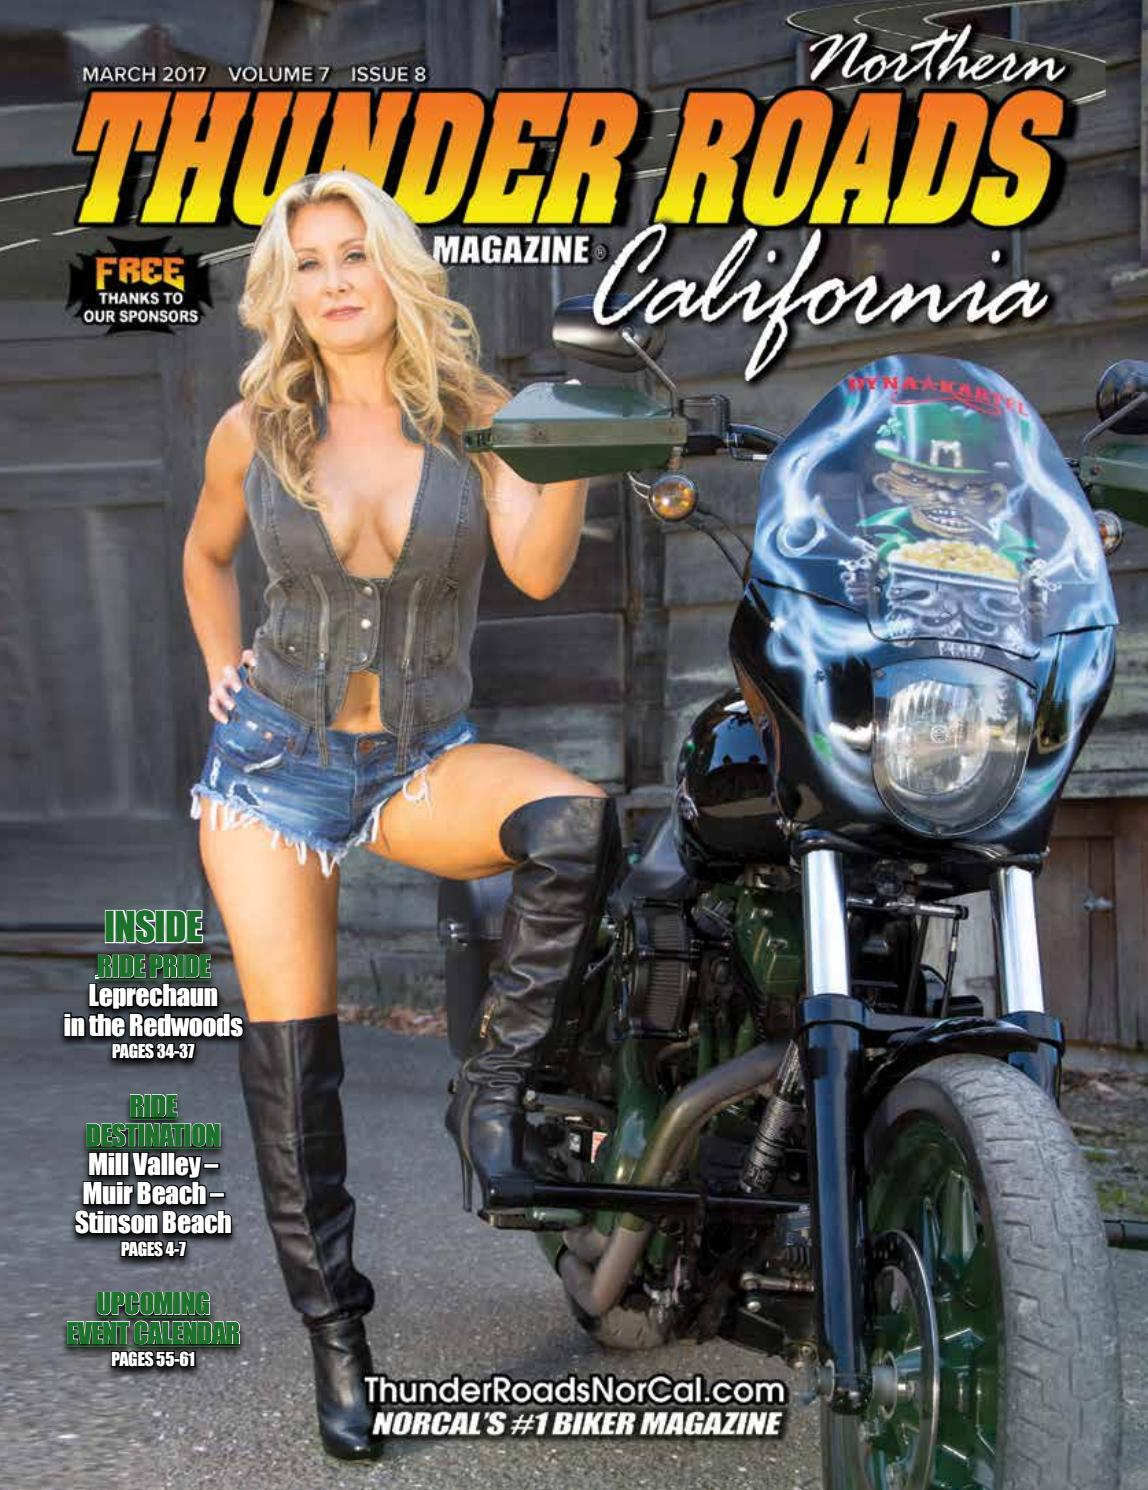 Thunder Roads NorCal - March 2017 by trmnorcal - issuu